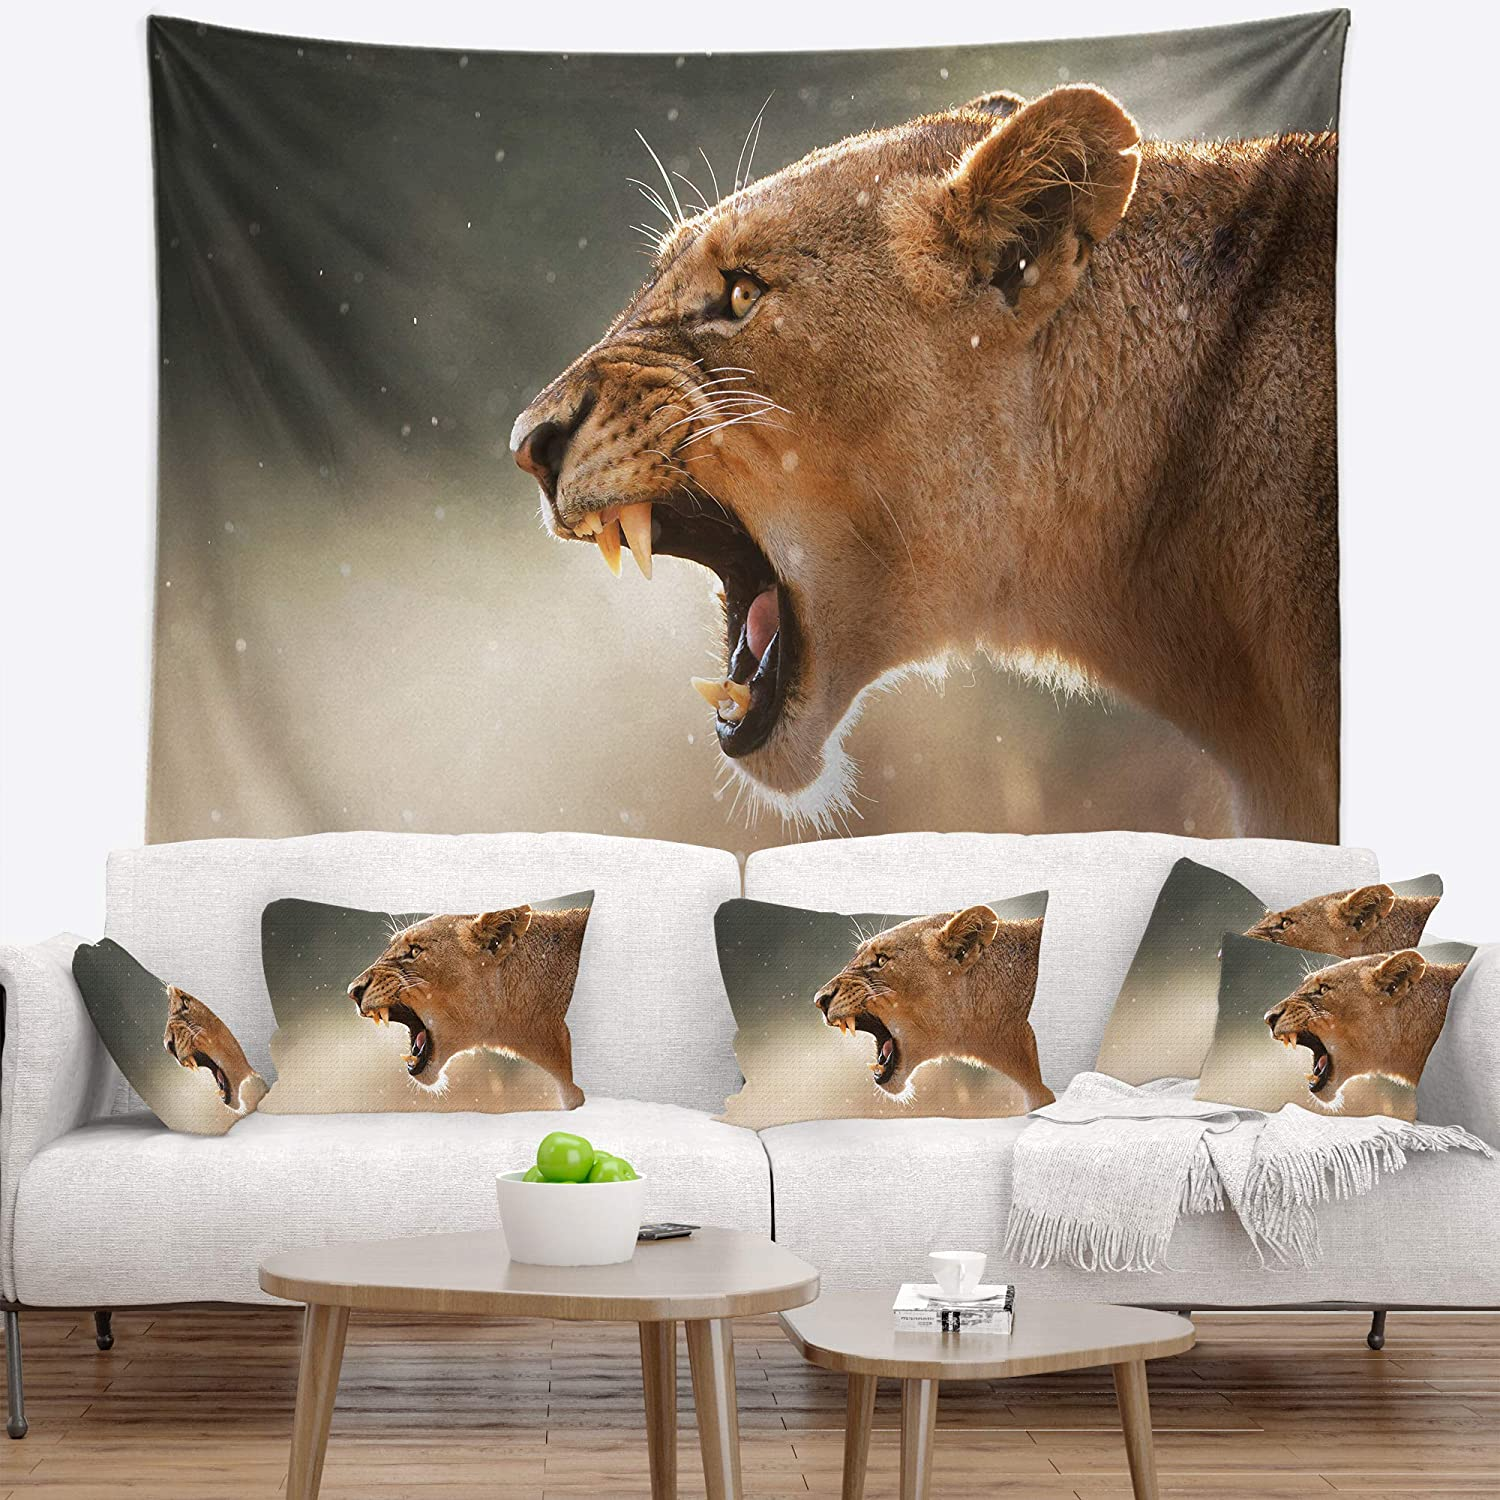 Designart TAP12948-39-32 'Lion Showing Dangerous Teeth' African Tapestry Blanket Décor Wall Art for Home and Office, Medium: 39 in. x 32 in, Created on Lightweight Polyester Fabric